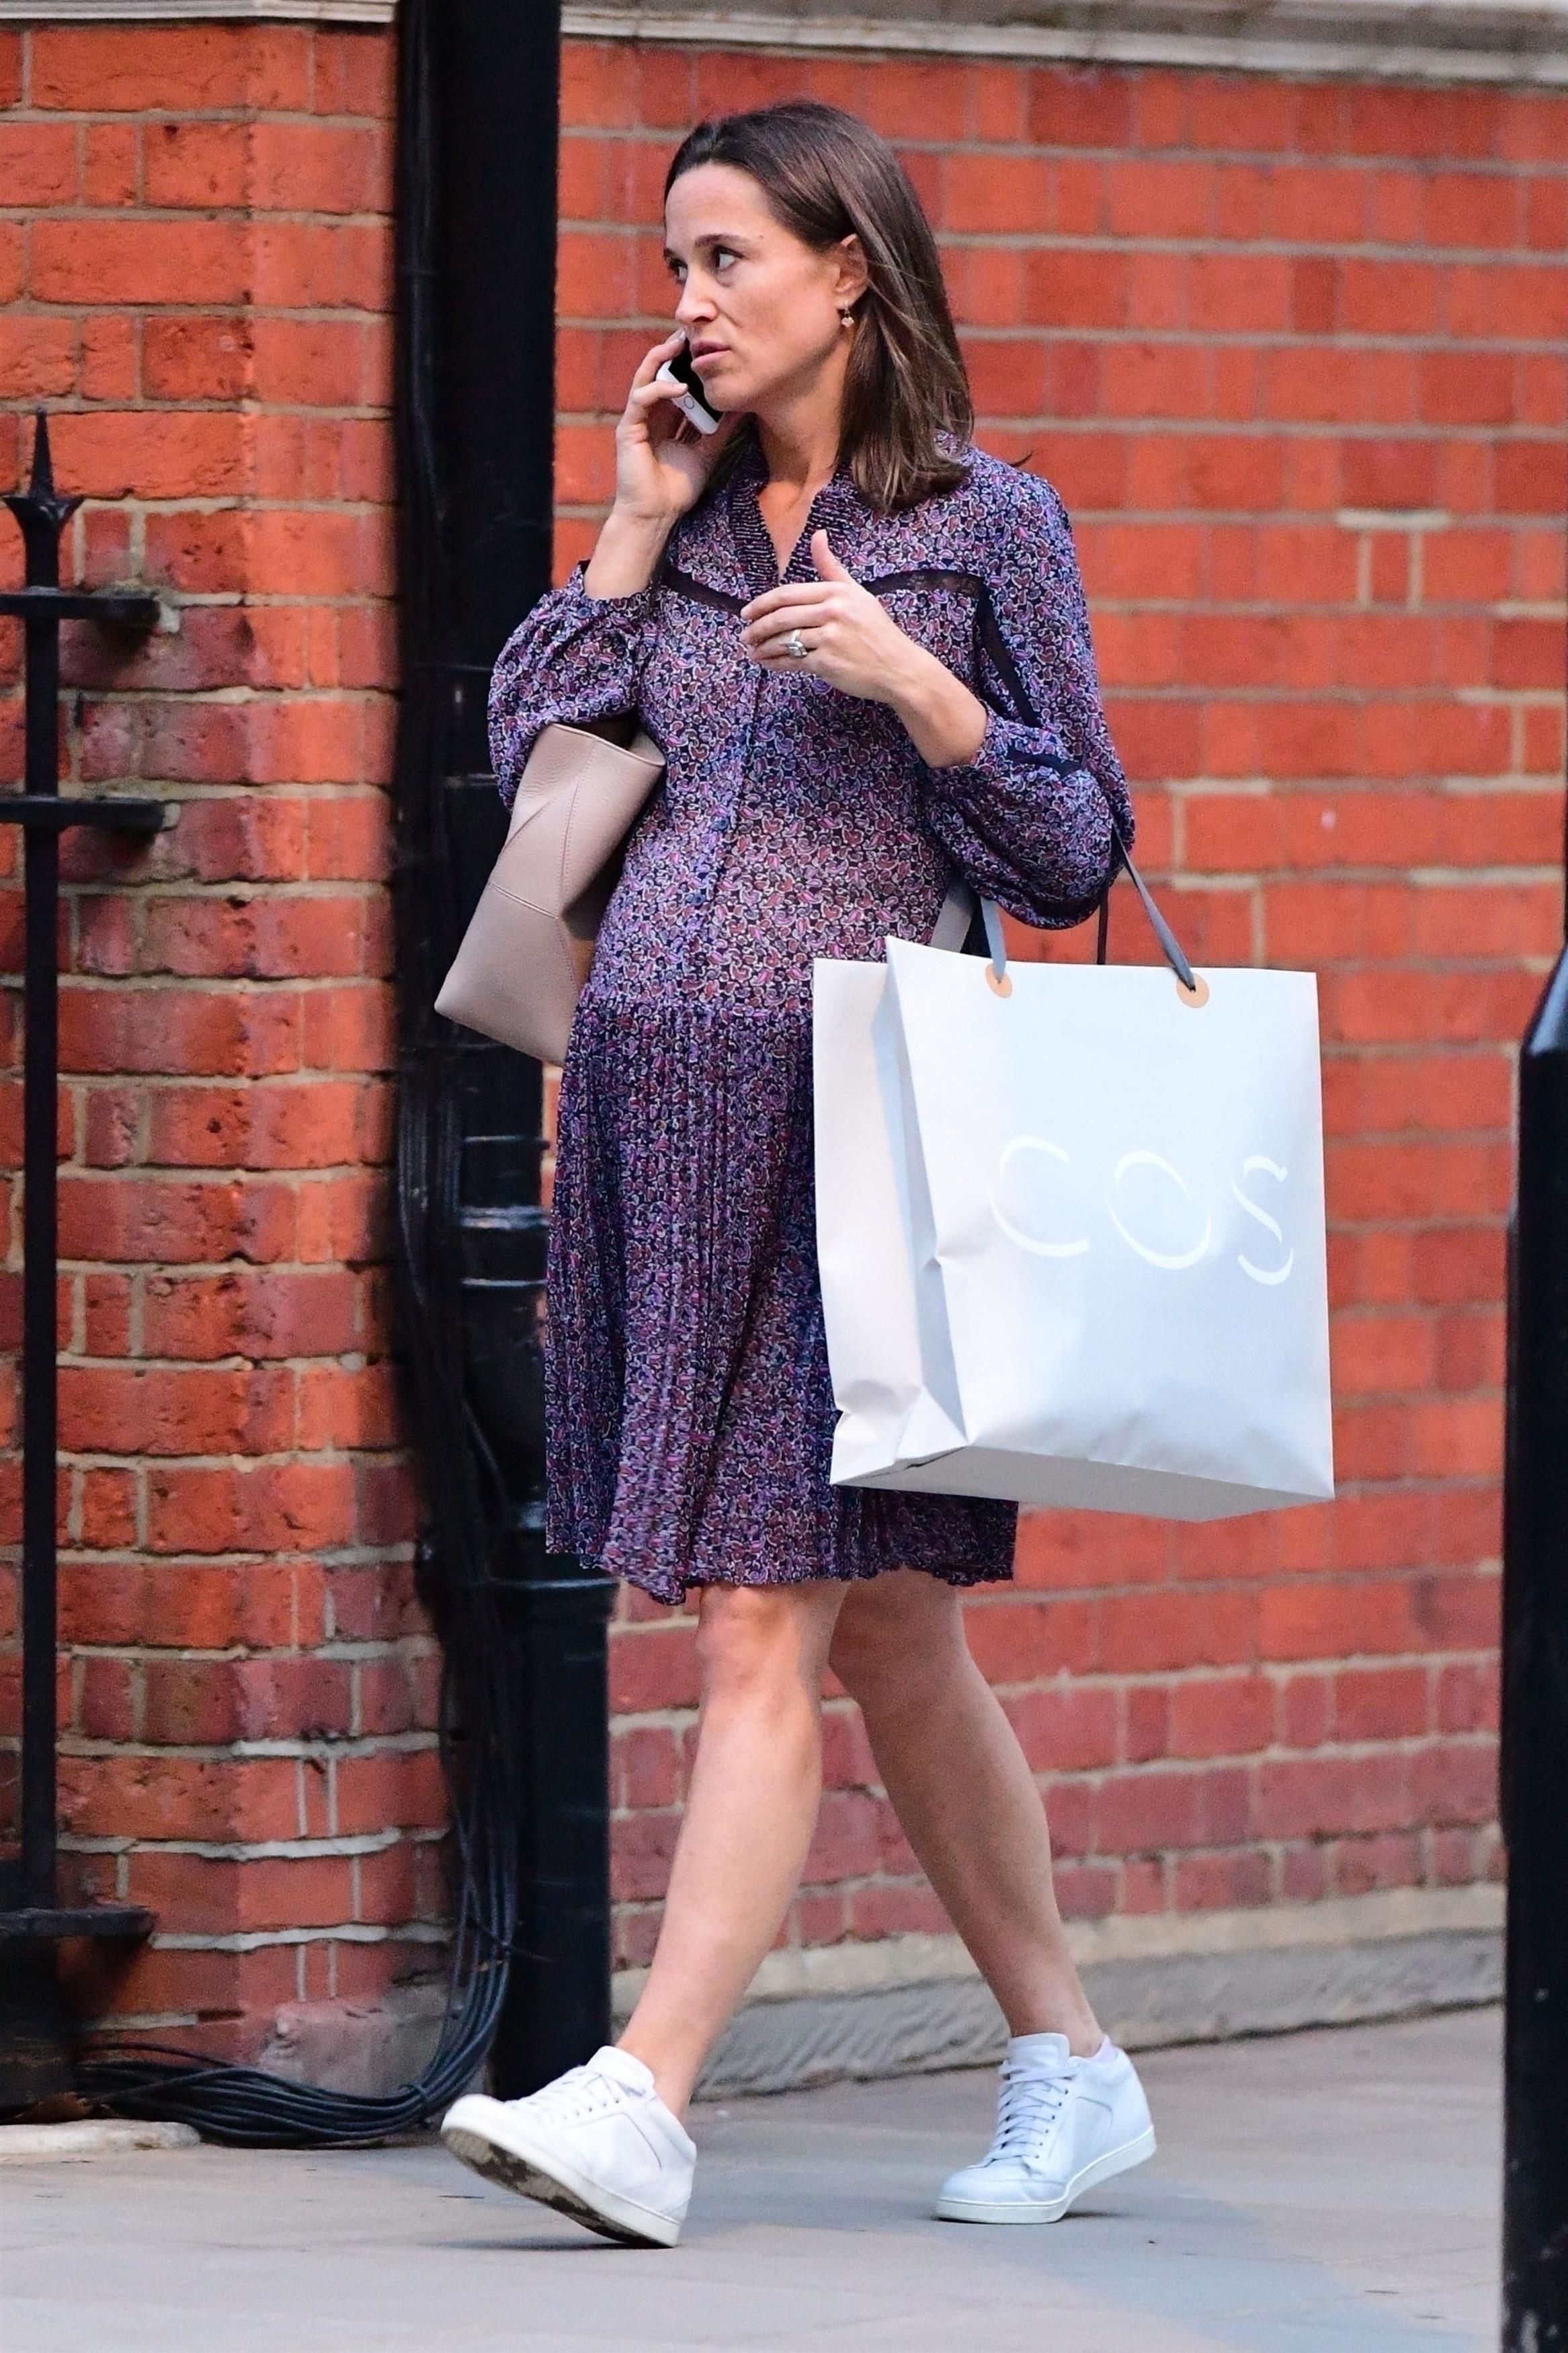 a6702a52fe9f7 Pippa Middleton s Best Pregnancy Outfits - Pippa Middleton Chic Maternity  Style